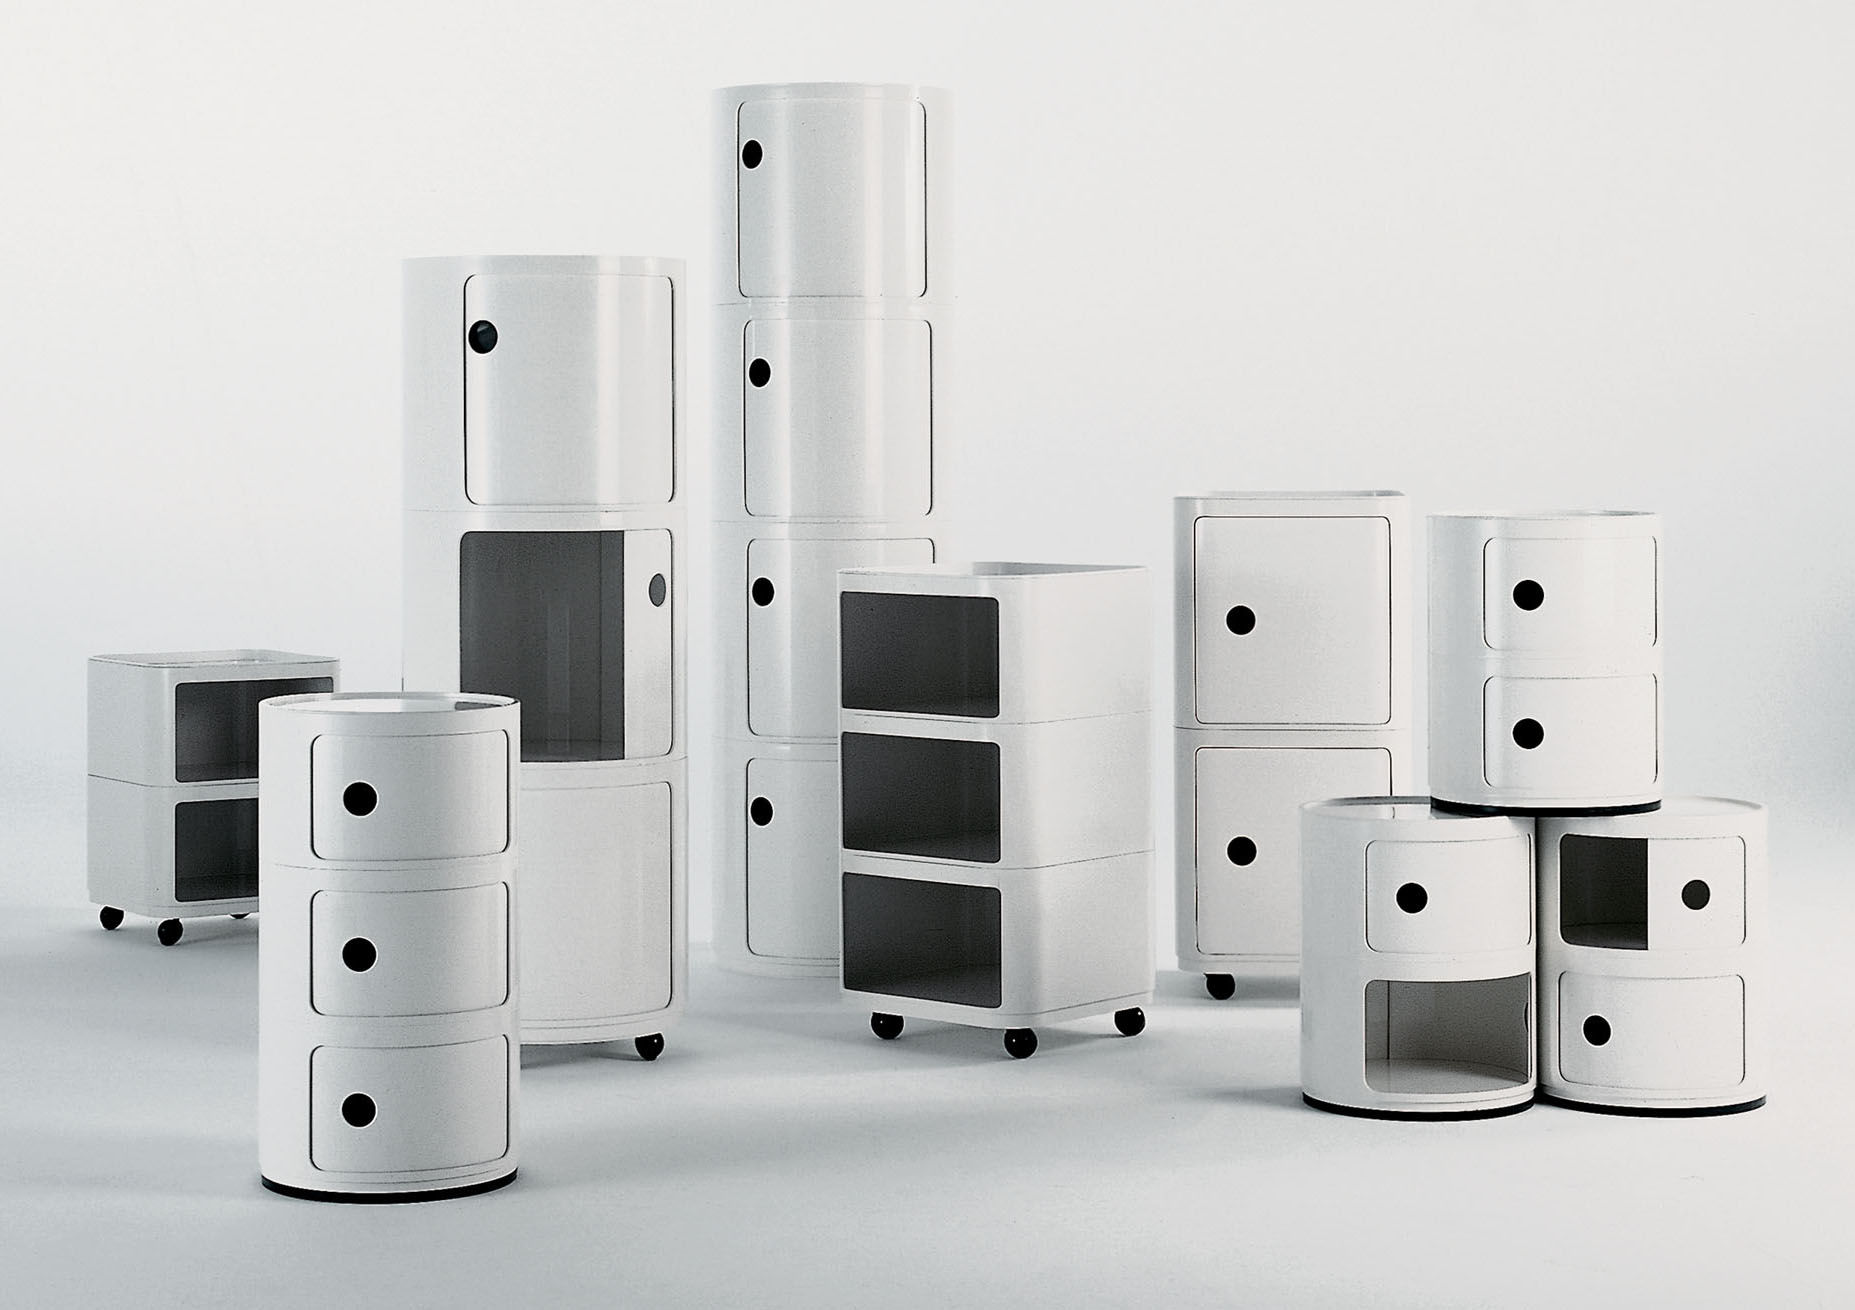 componibili storage - 2 elements ivory white by kartell